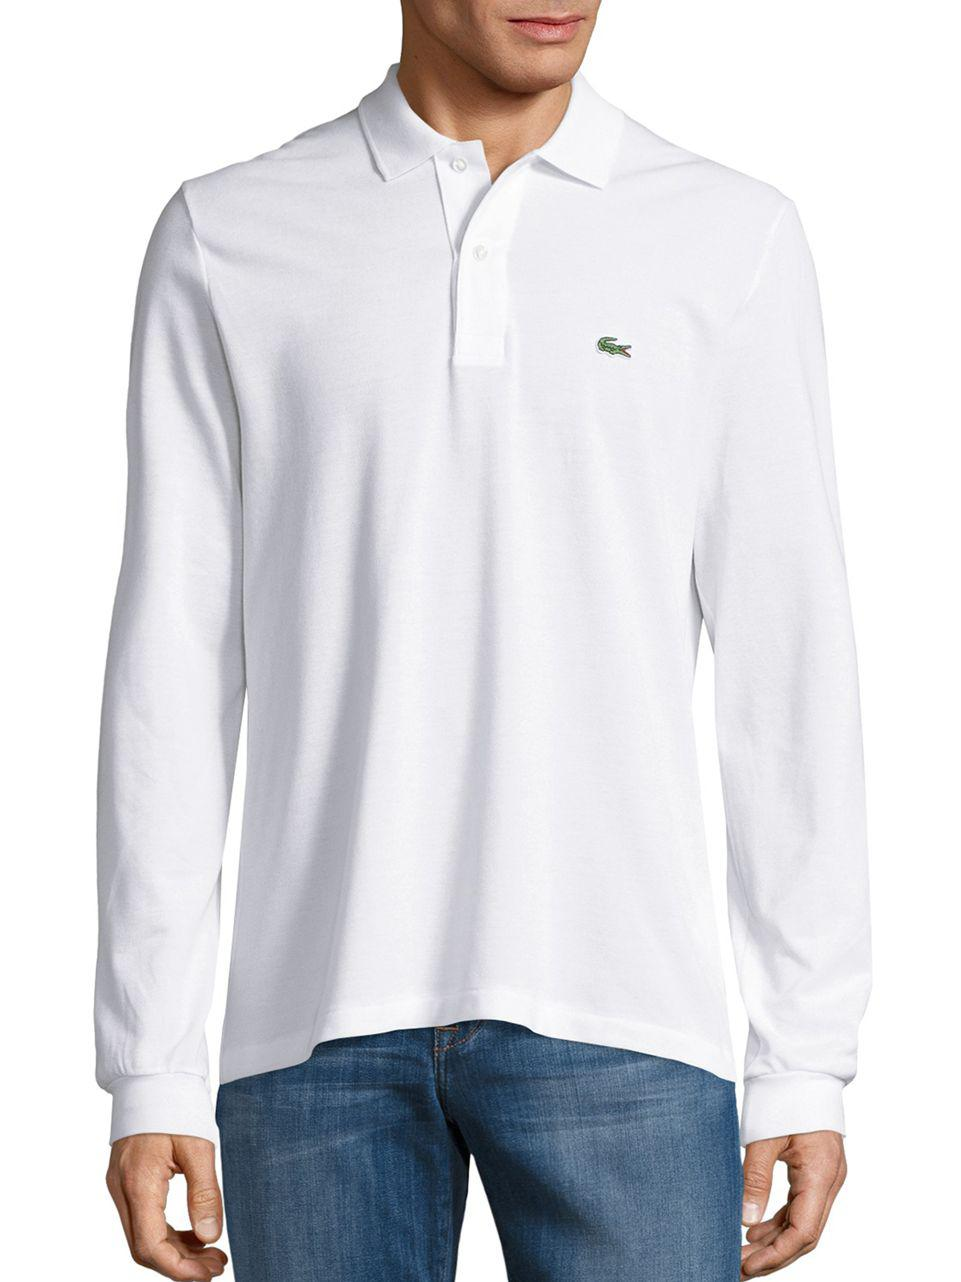 Lacoste. Men's White Pique Polo Shirt